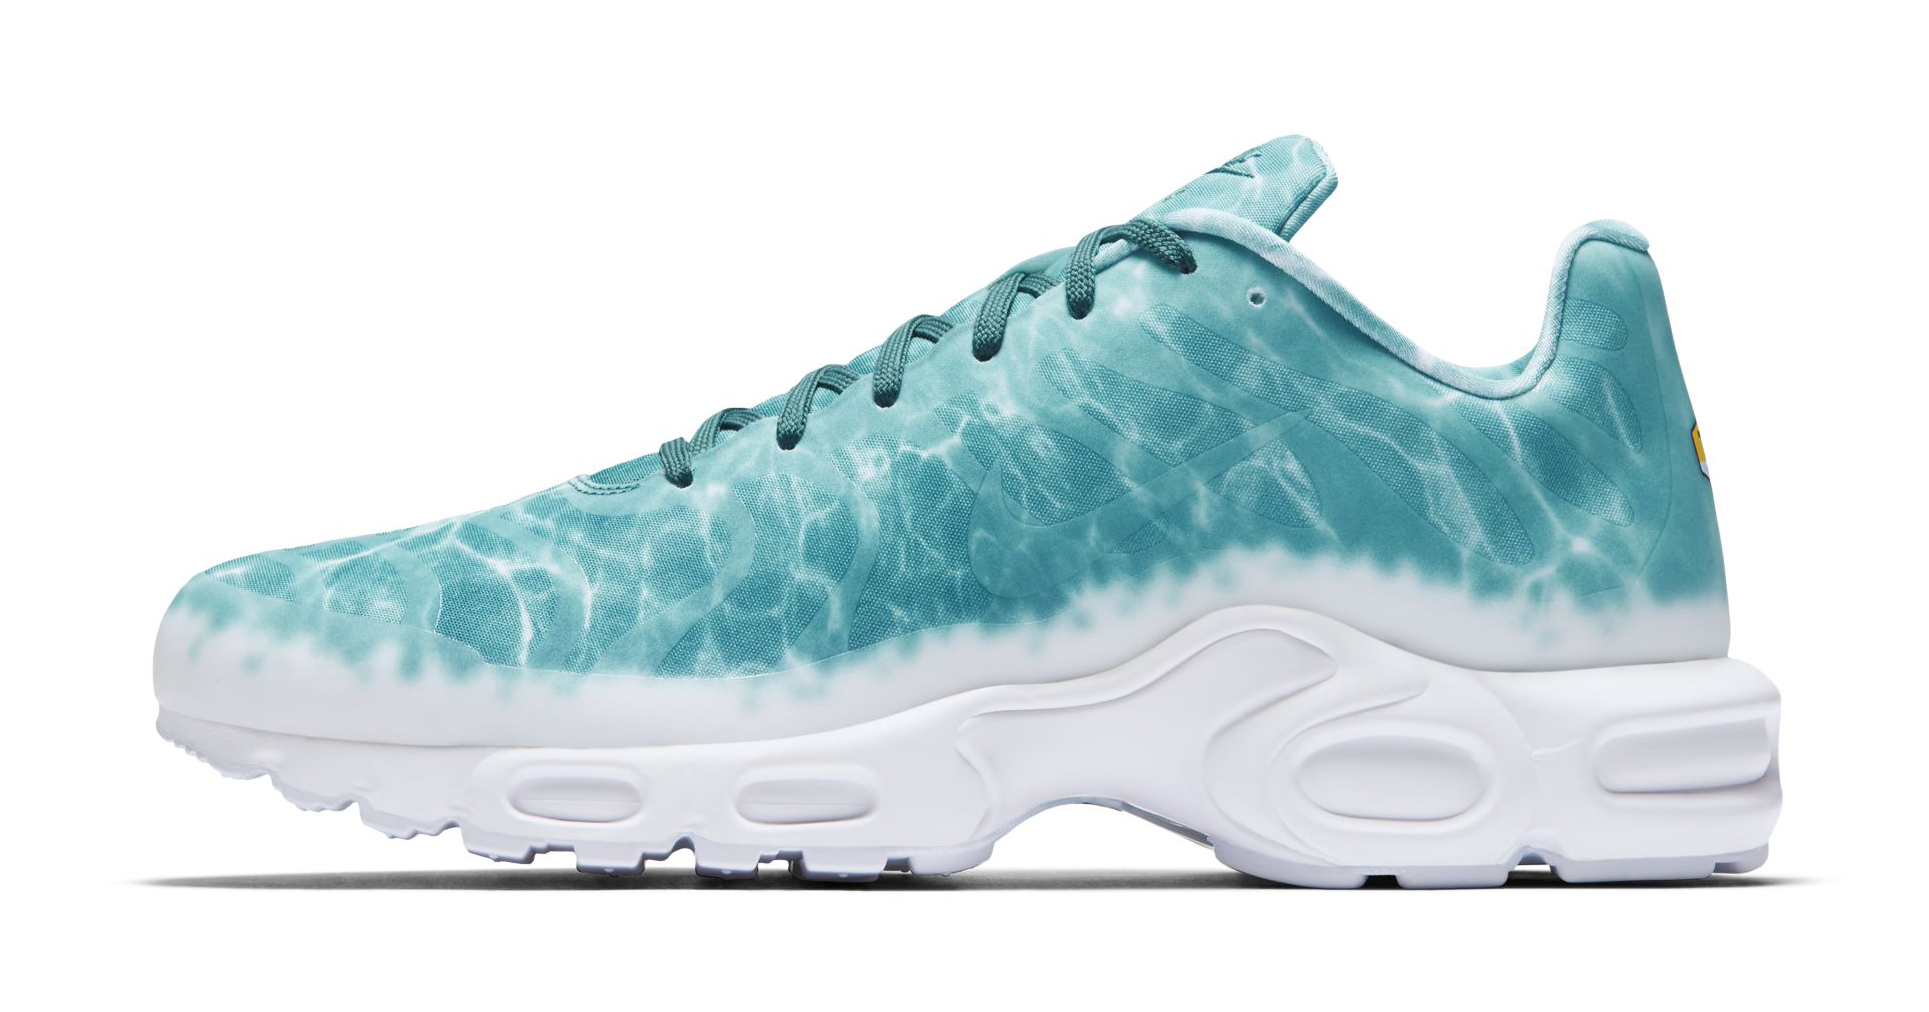 new style 0f70c a2a43 Nike Air Max Plus Water Medial